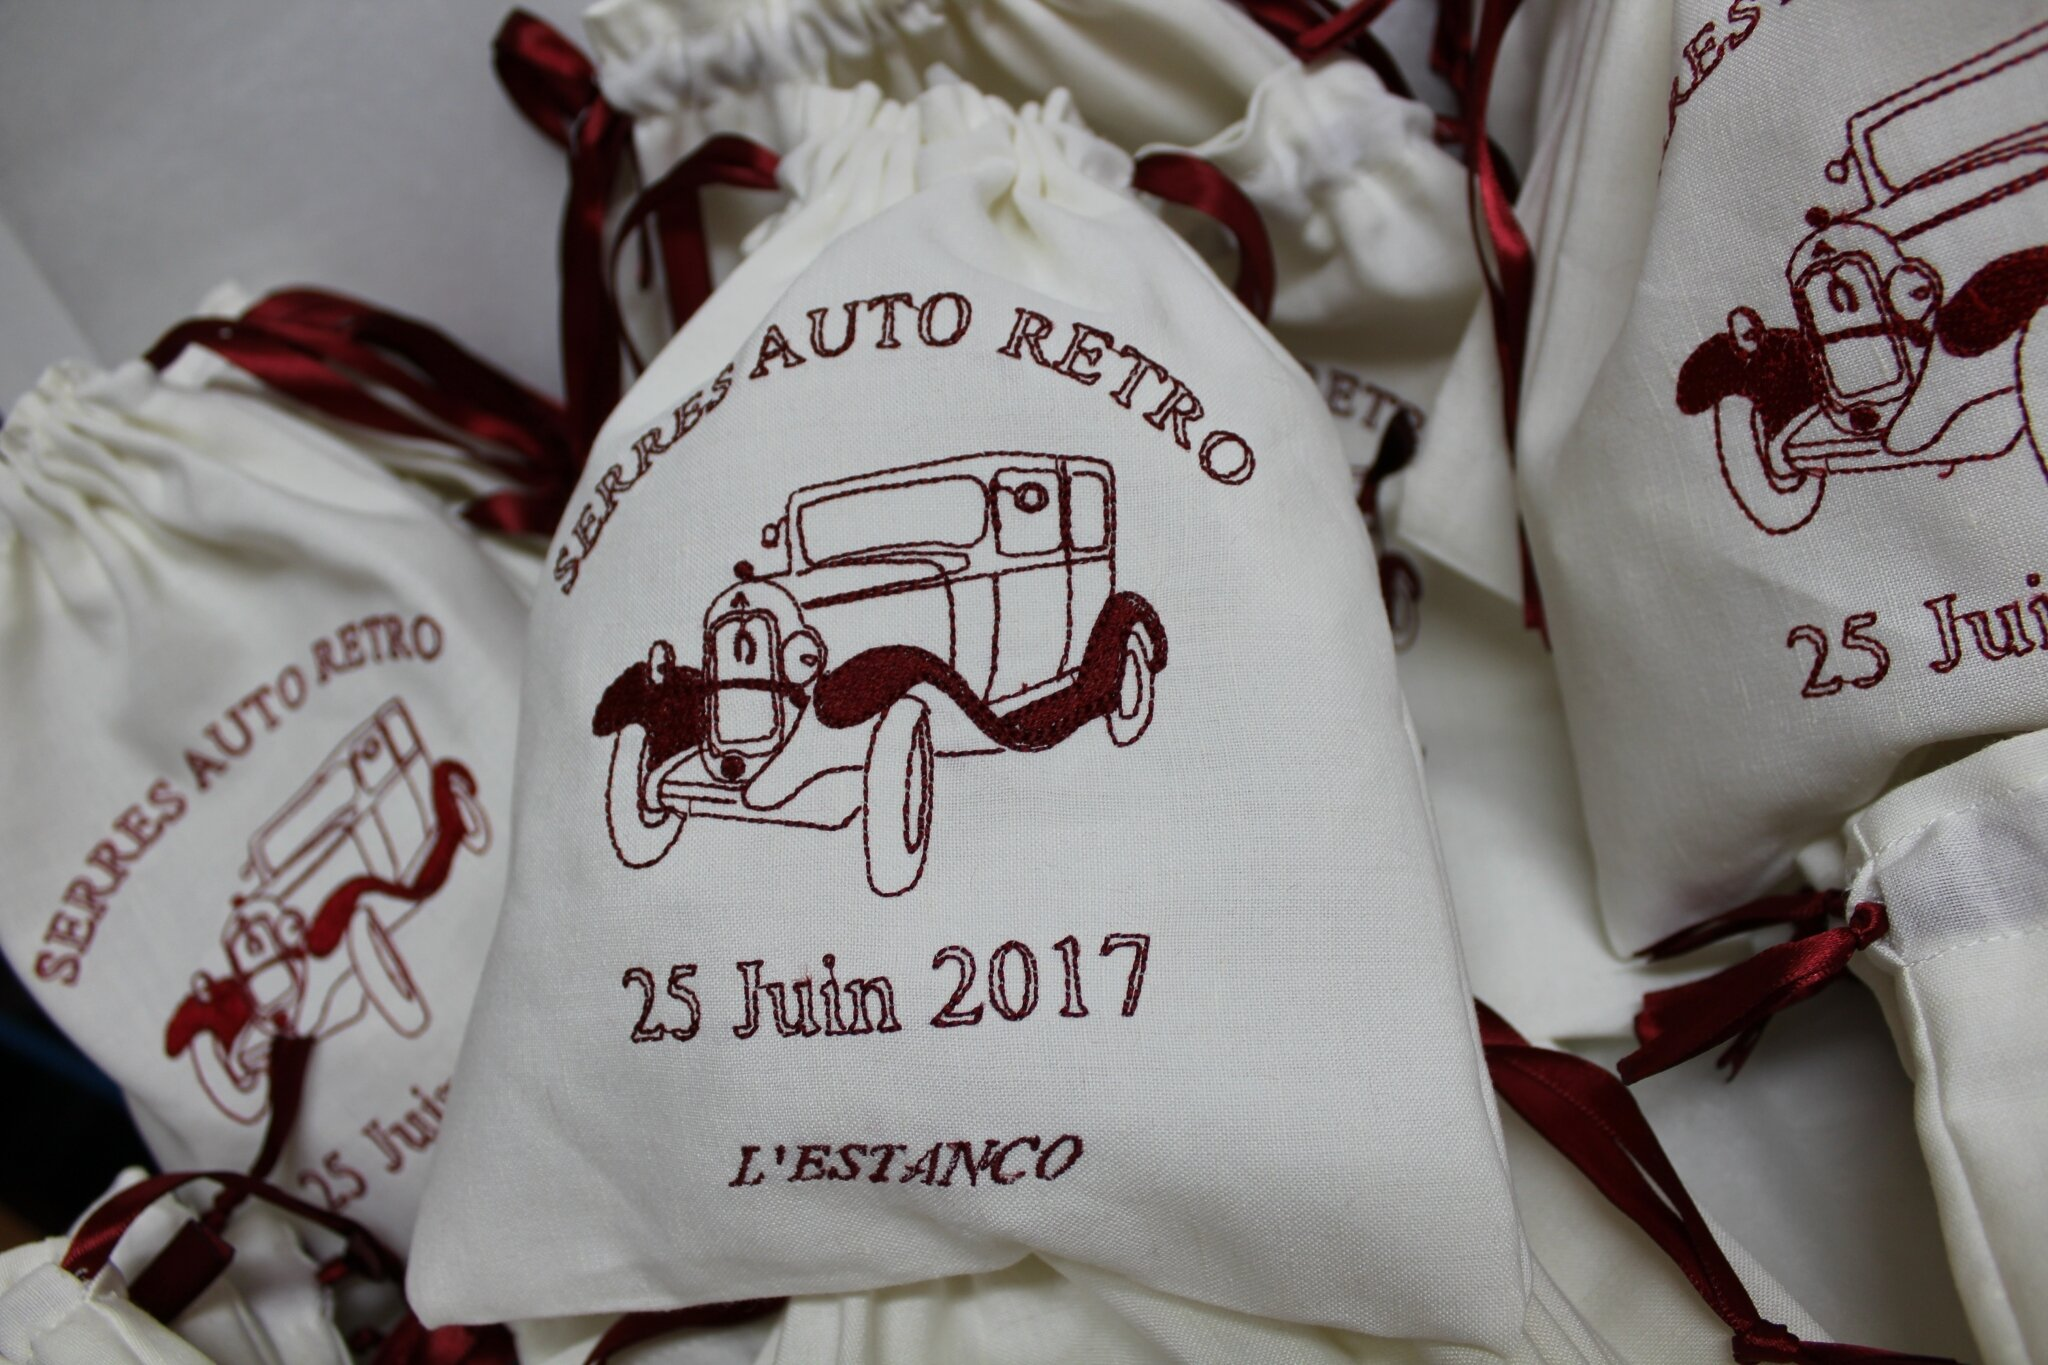 Serres Auto Retro L'Estanco, 25 juin 2017 suite...